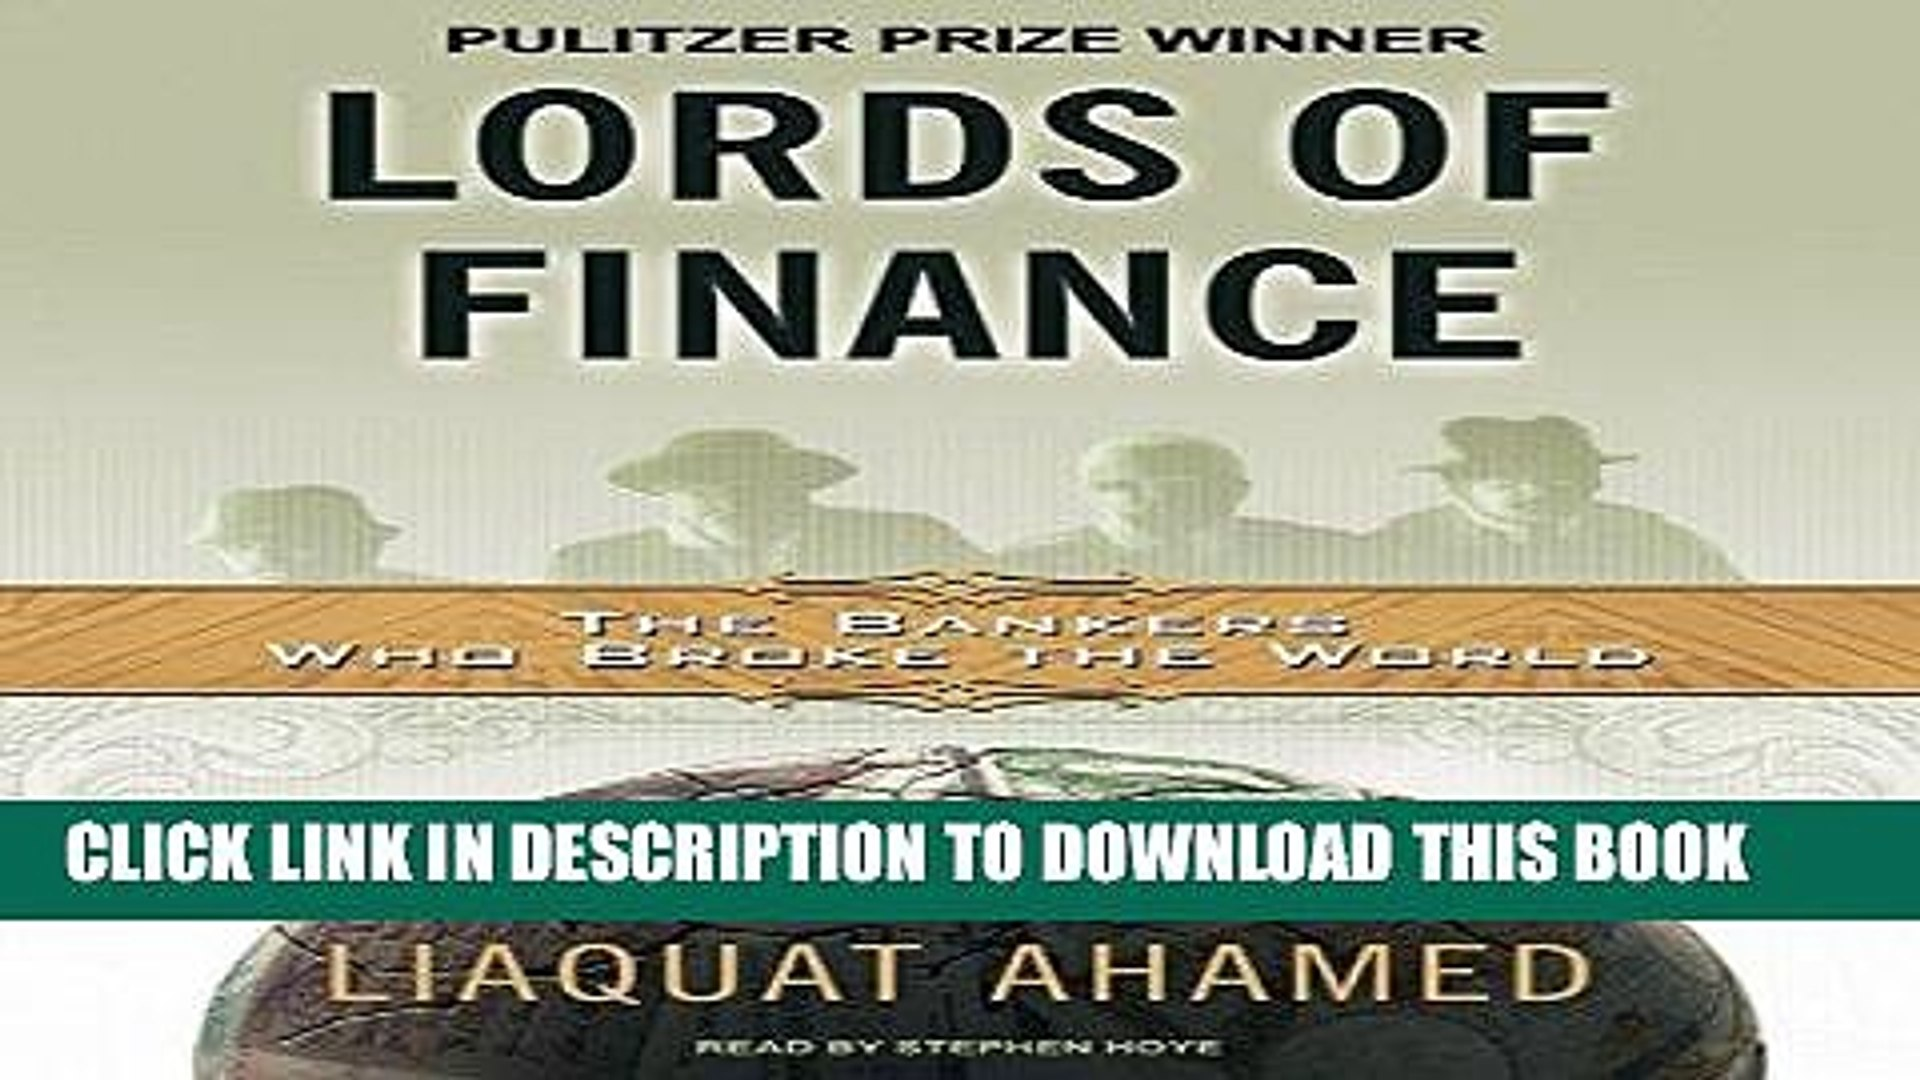 Ebook Lords of Finance: The Bankers Who Broke the World [MP3 AUDIO] [UNABRIDGED] (MP3 CD) Free